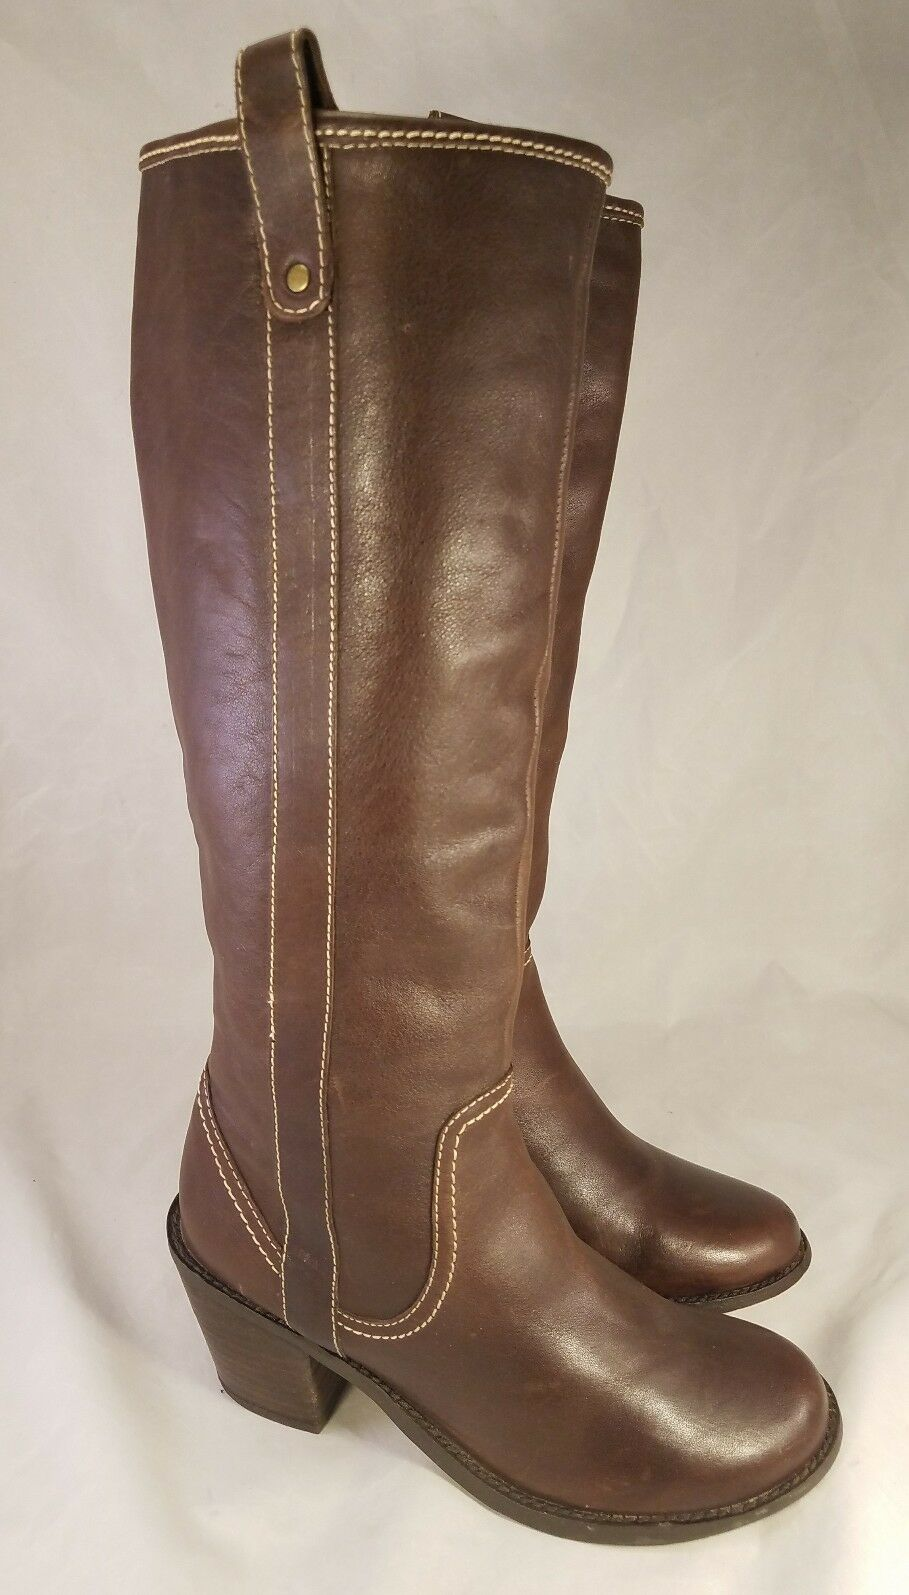 STEVE MADDEN WOMAN LEATHER BOOTS CAMP  TALL BROWN TALL  RIDING EQUESTRIAN 6 B d4f9a9